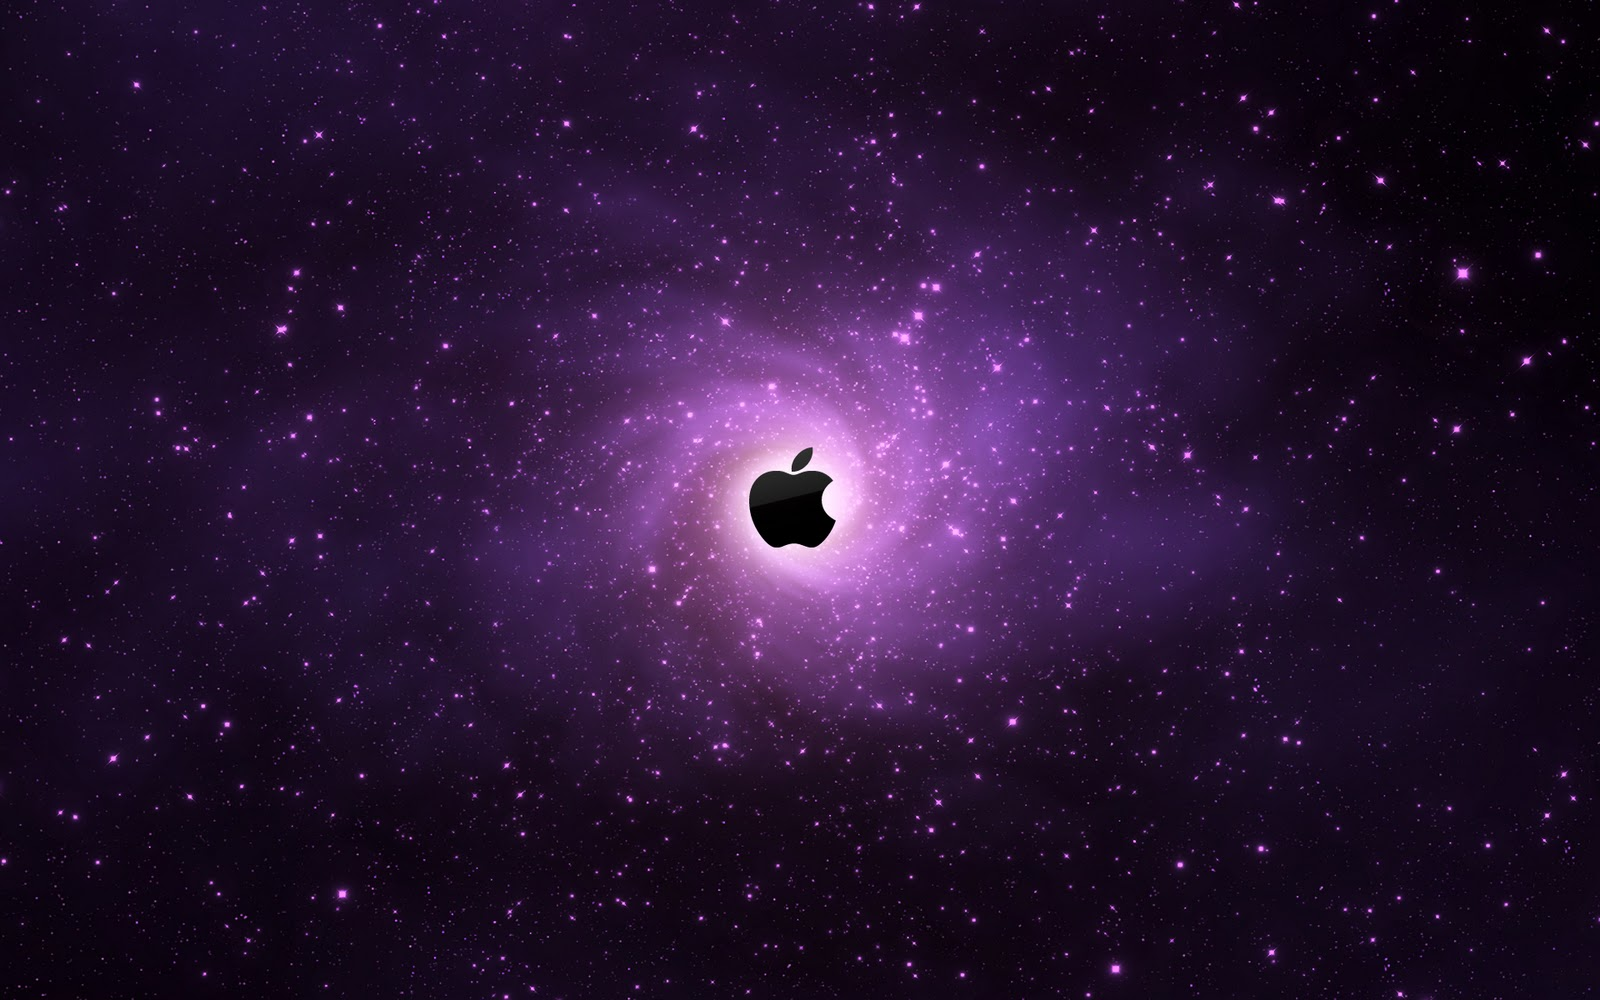 http://2.bp.blogspot.com/-lKjmyEHlDiI/TyQJHSi73_I/AAAAAAAADRM/DaCD5DqS_zI/s1600/apple-purple-wallpaper-download.jpg